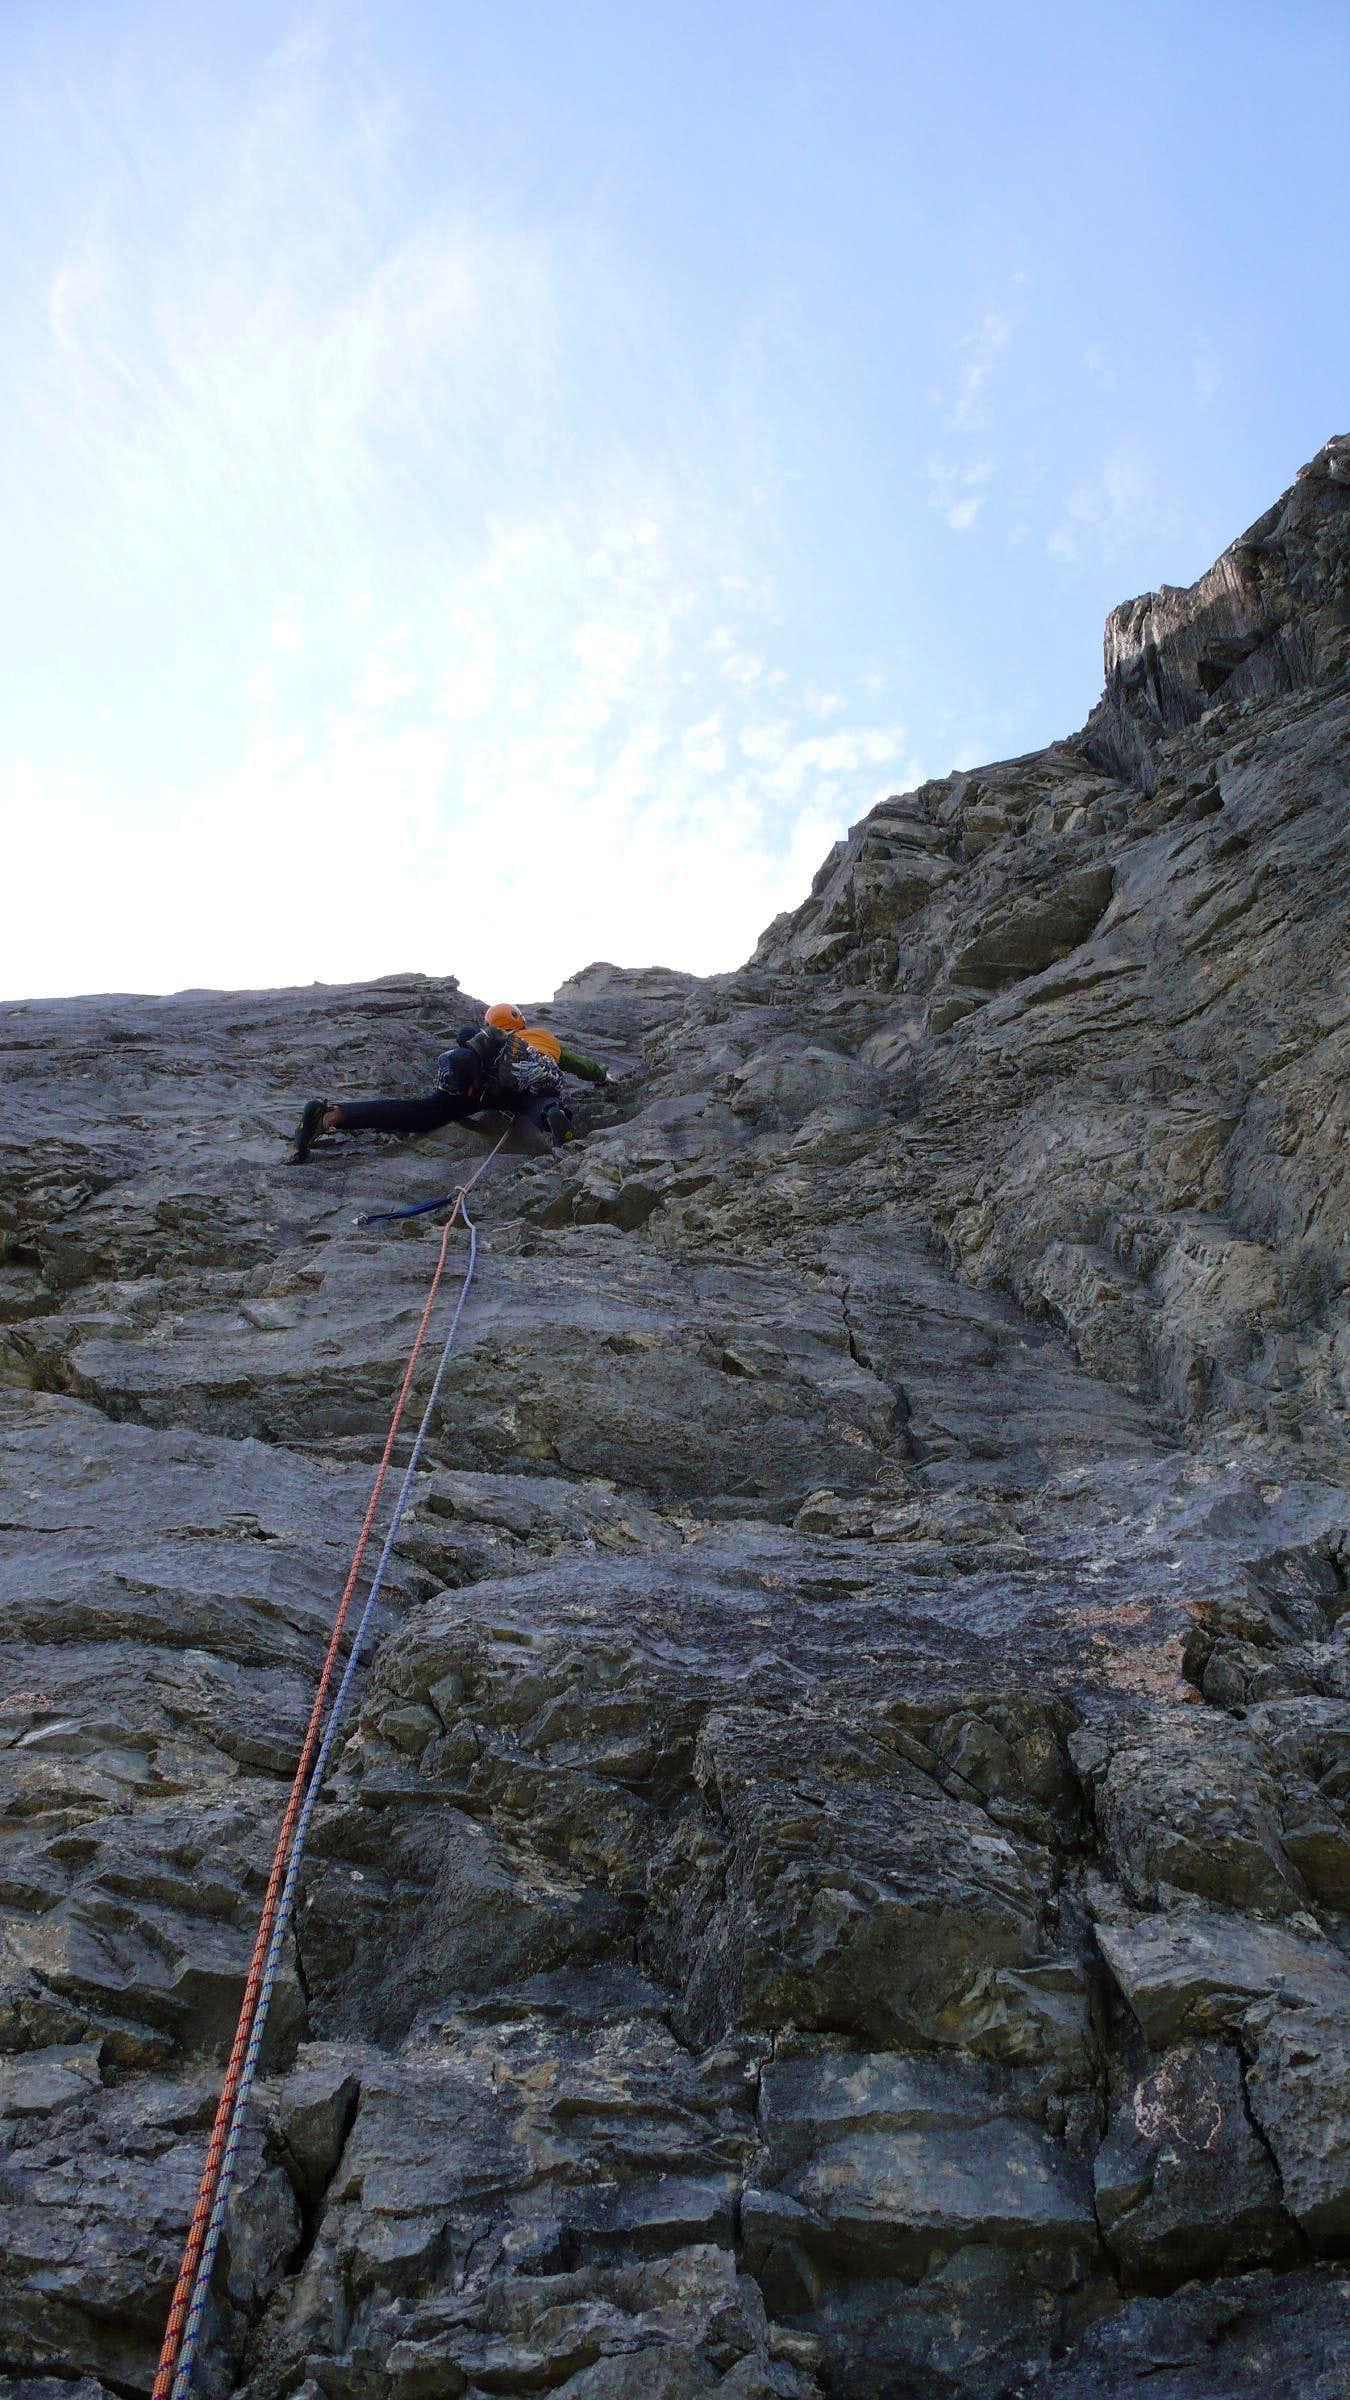 Angelus Vicia, 5.10a, 8 Pitches